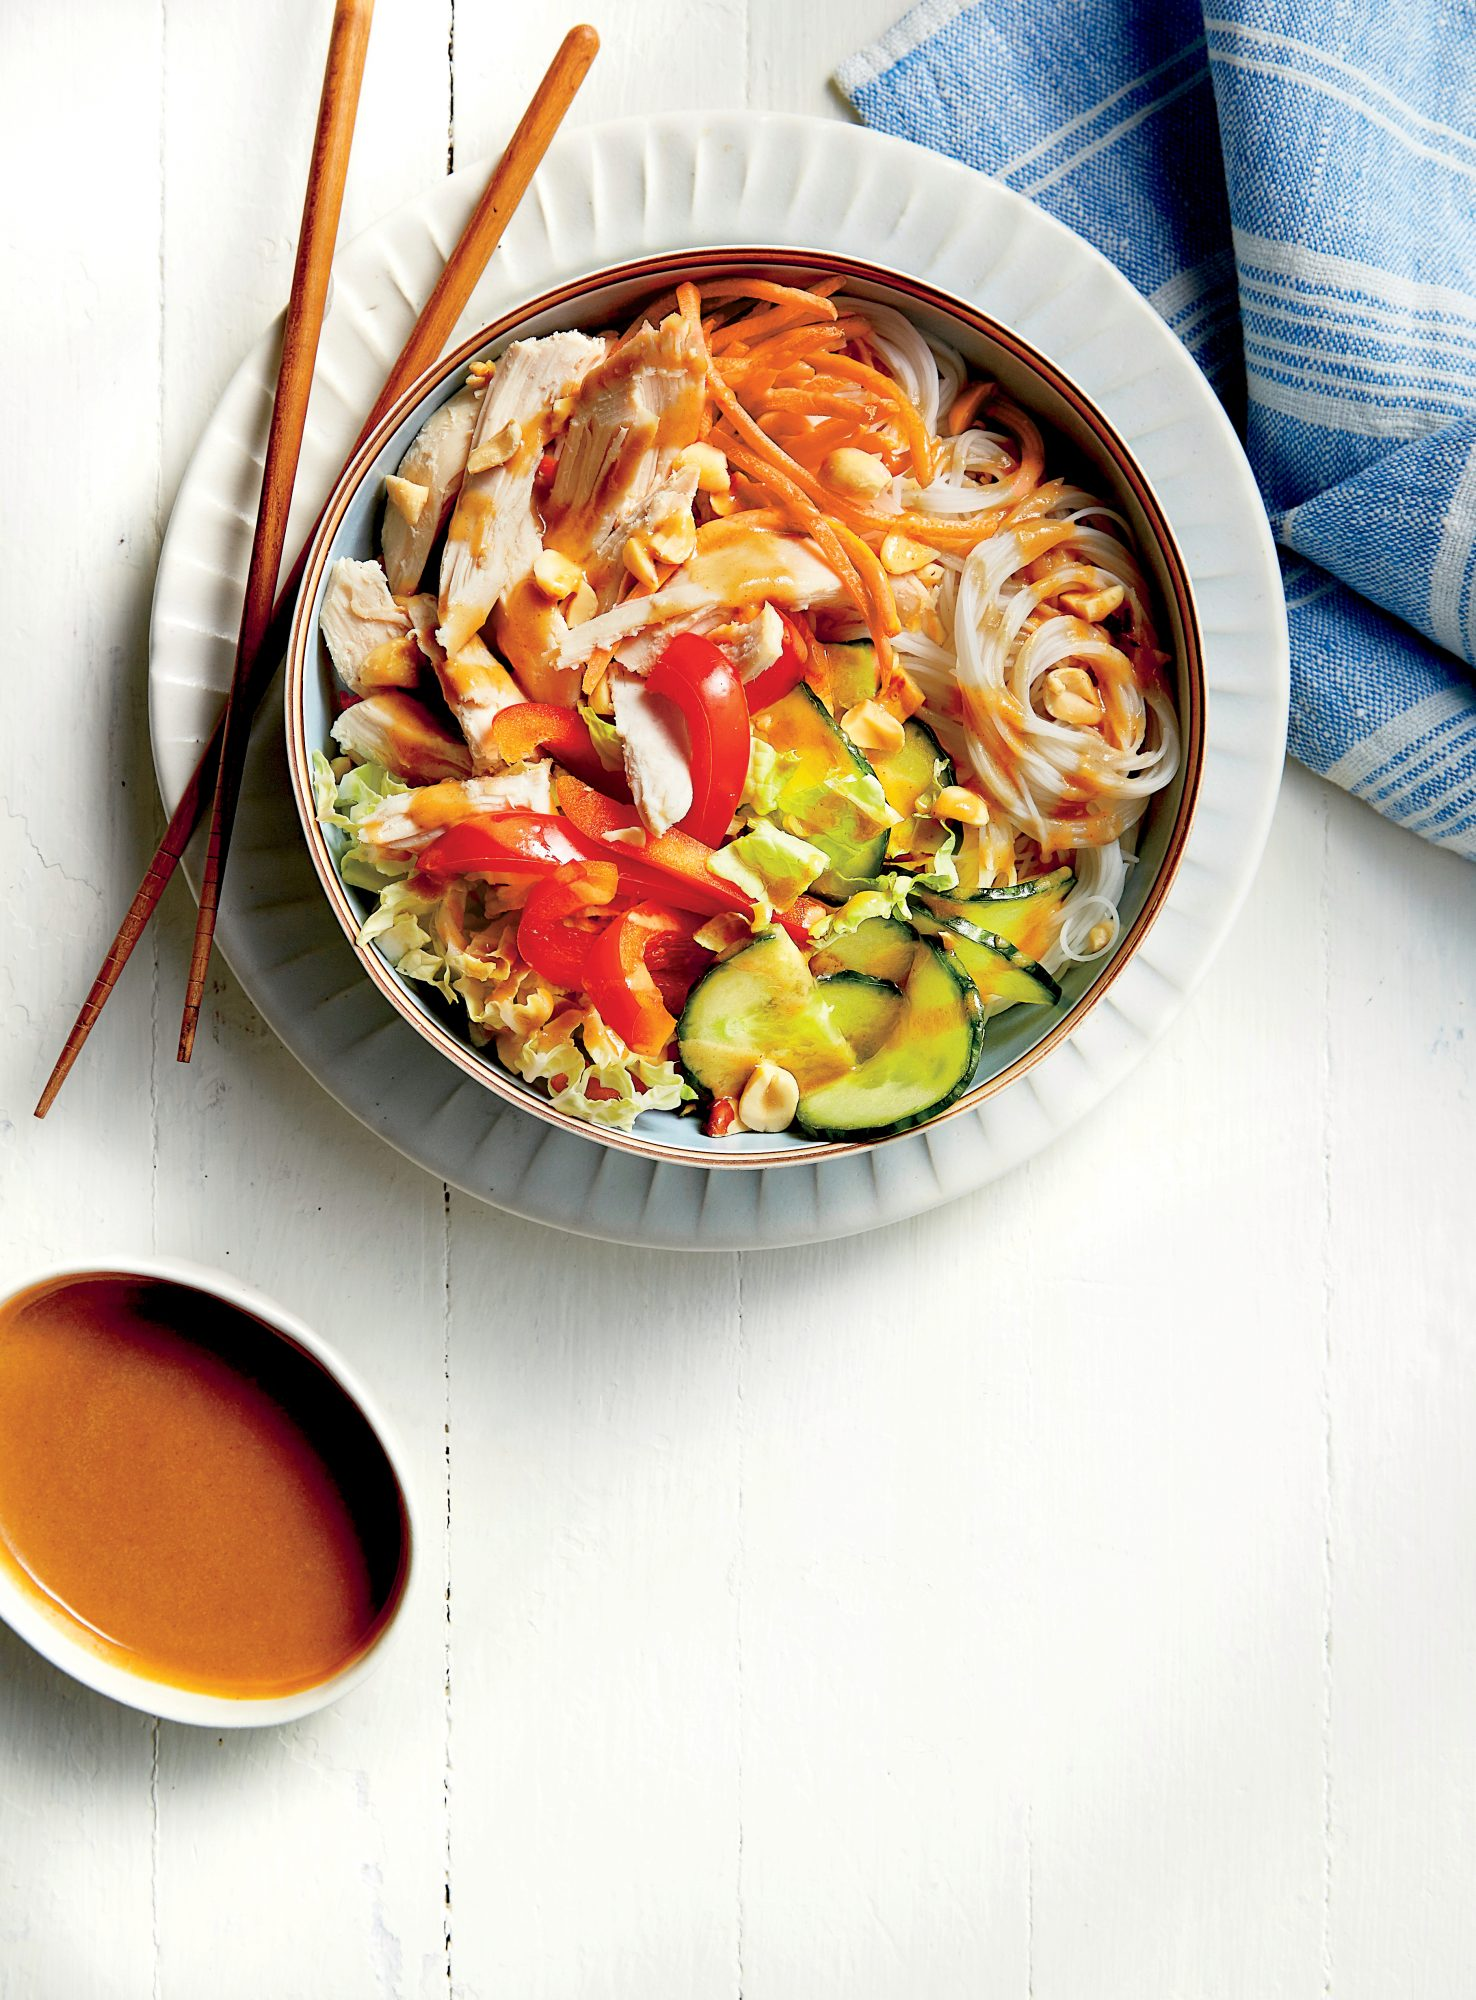 Chicken Noodle Bowl with Peanut-Ginger Sauce